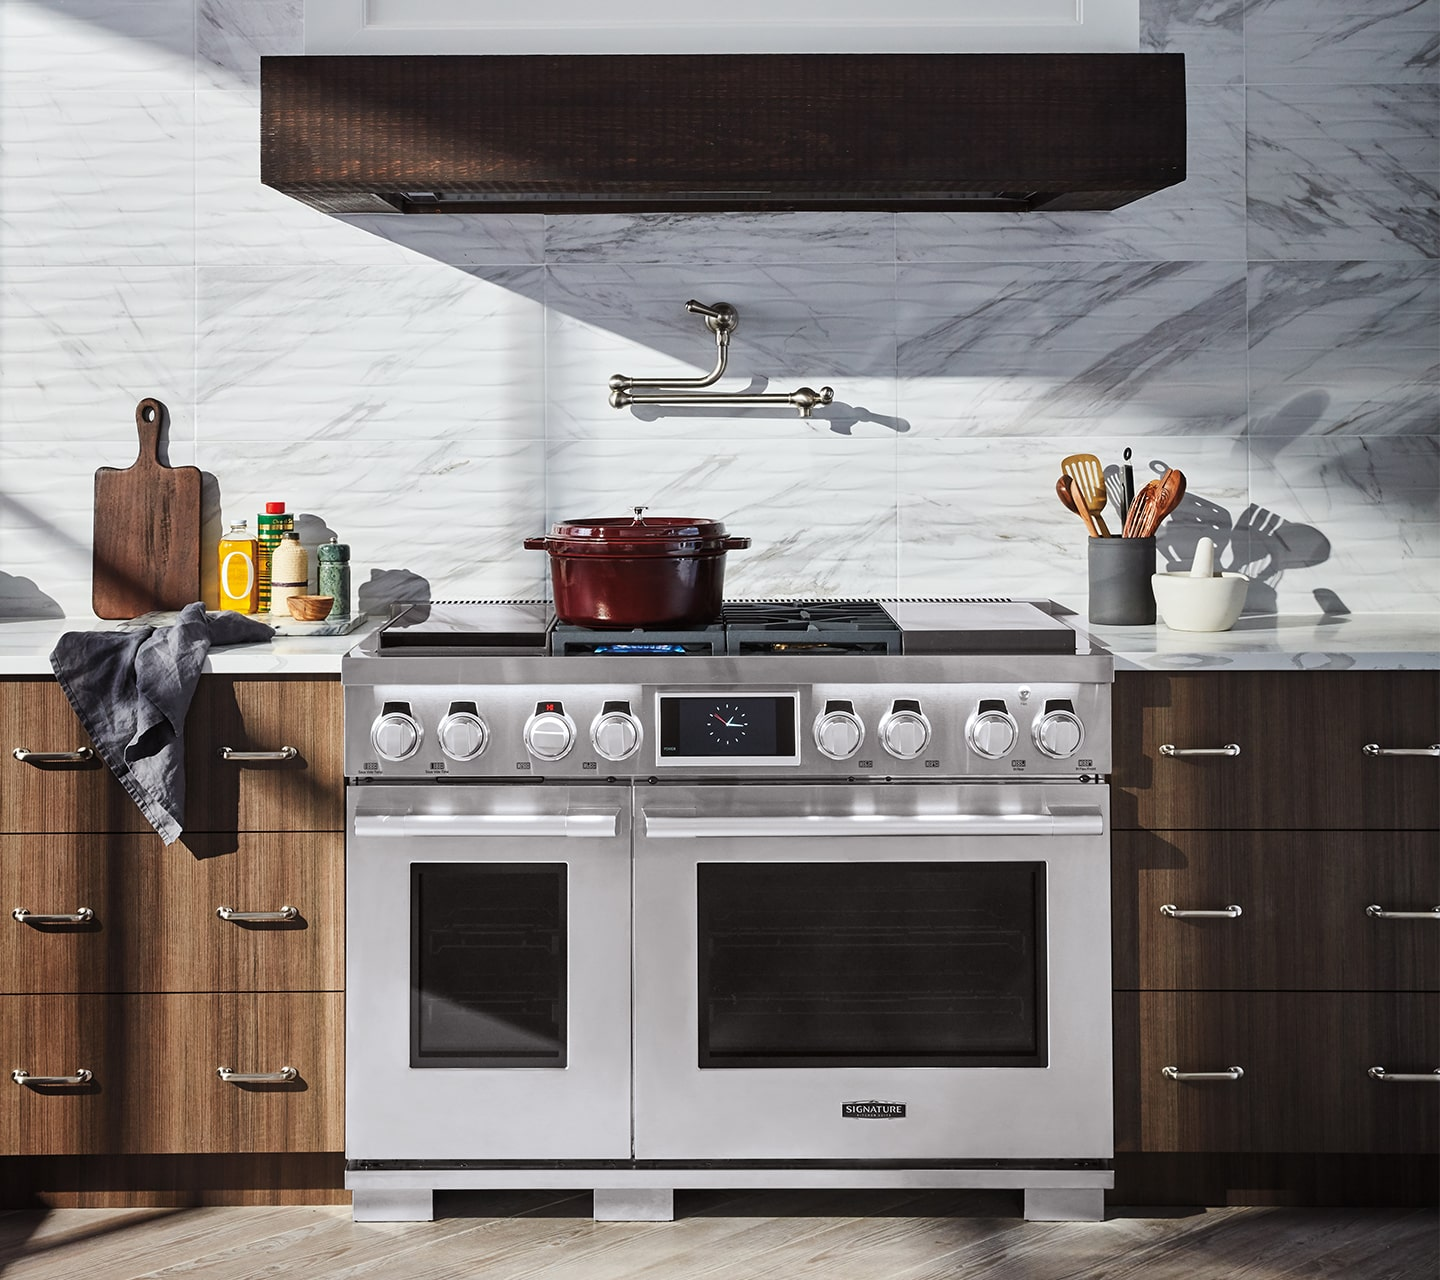 "48"" Dual-Fuel Pro Range with sous-vide built-in from Signature Kitchen Suite"